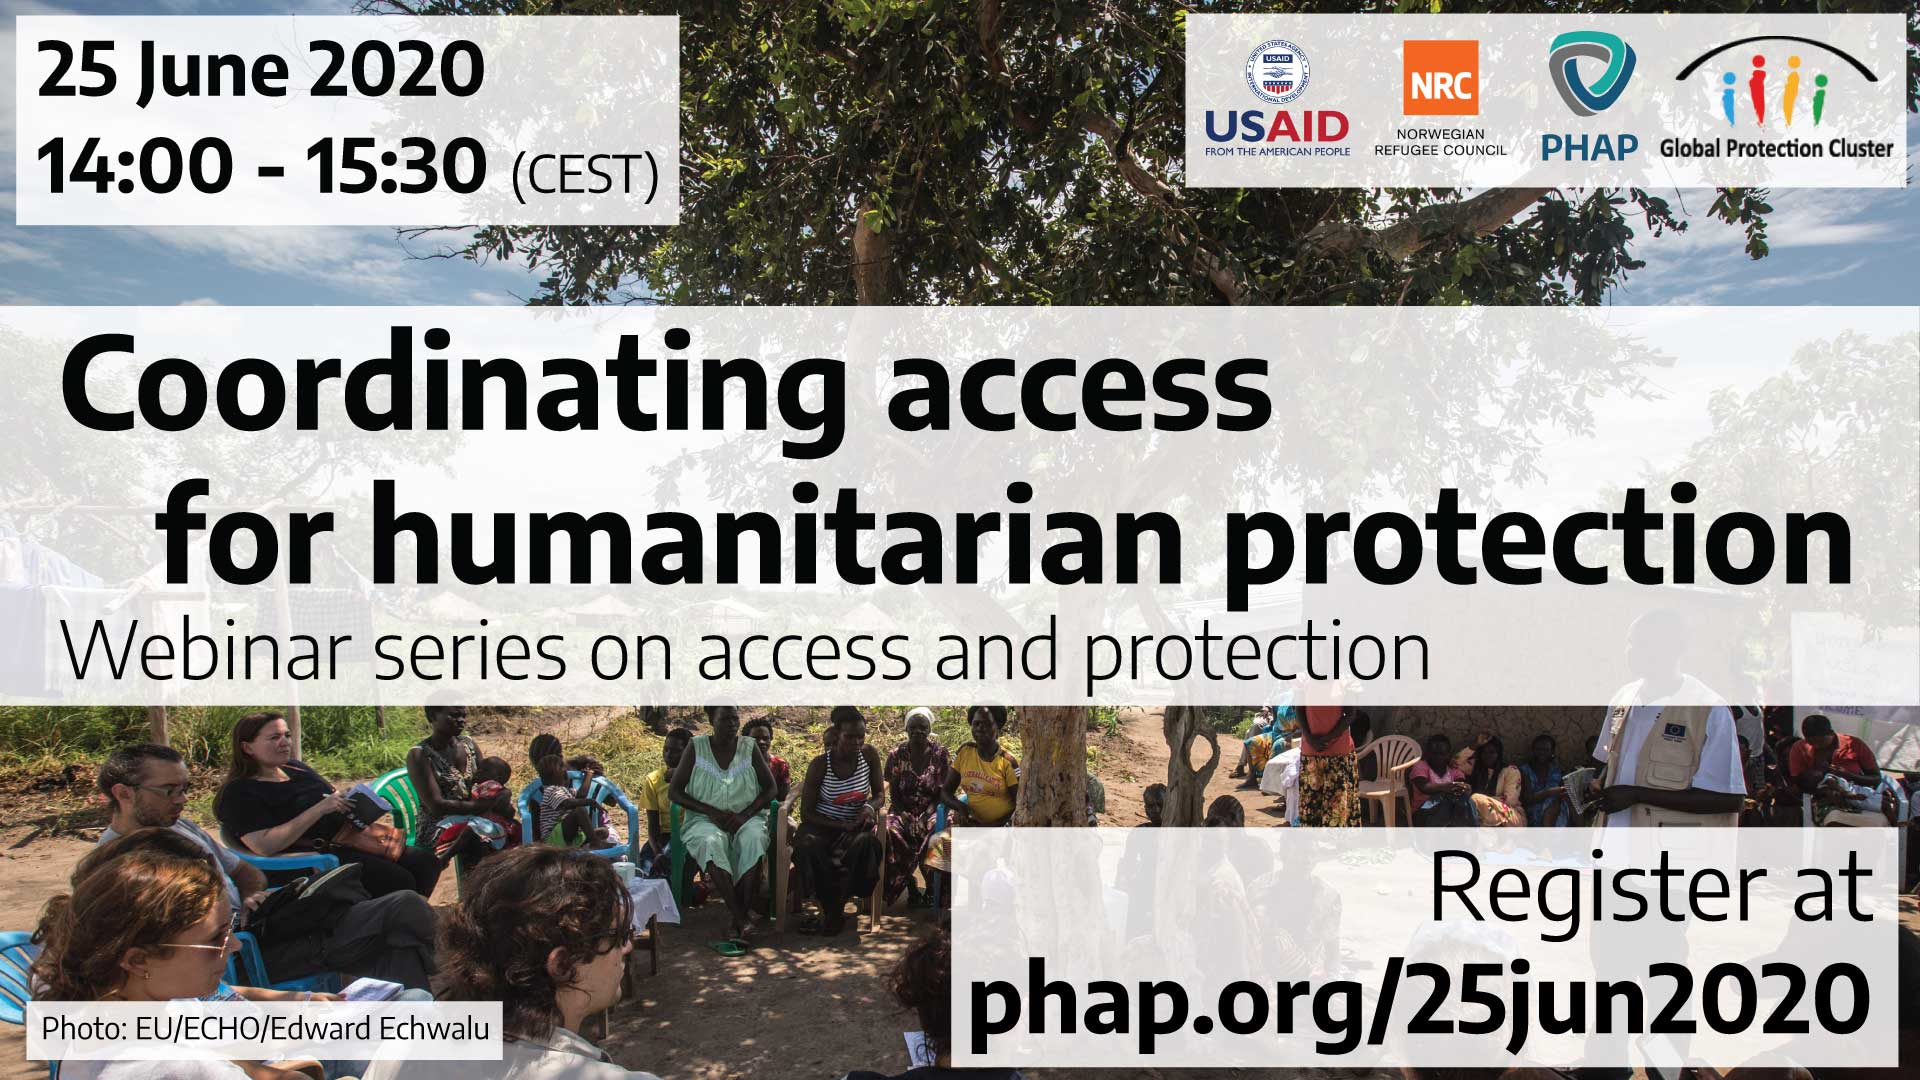 Banner for the webinar Coordinating access for humanitarian protection